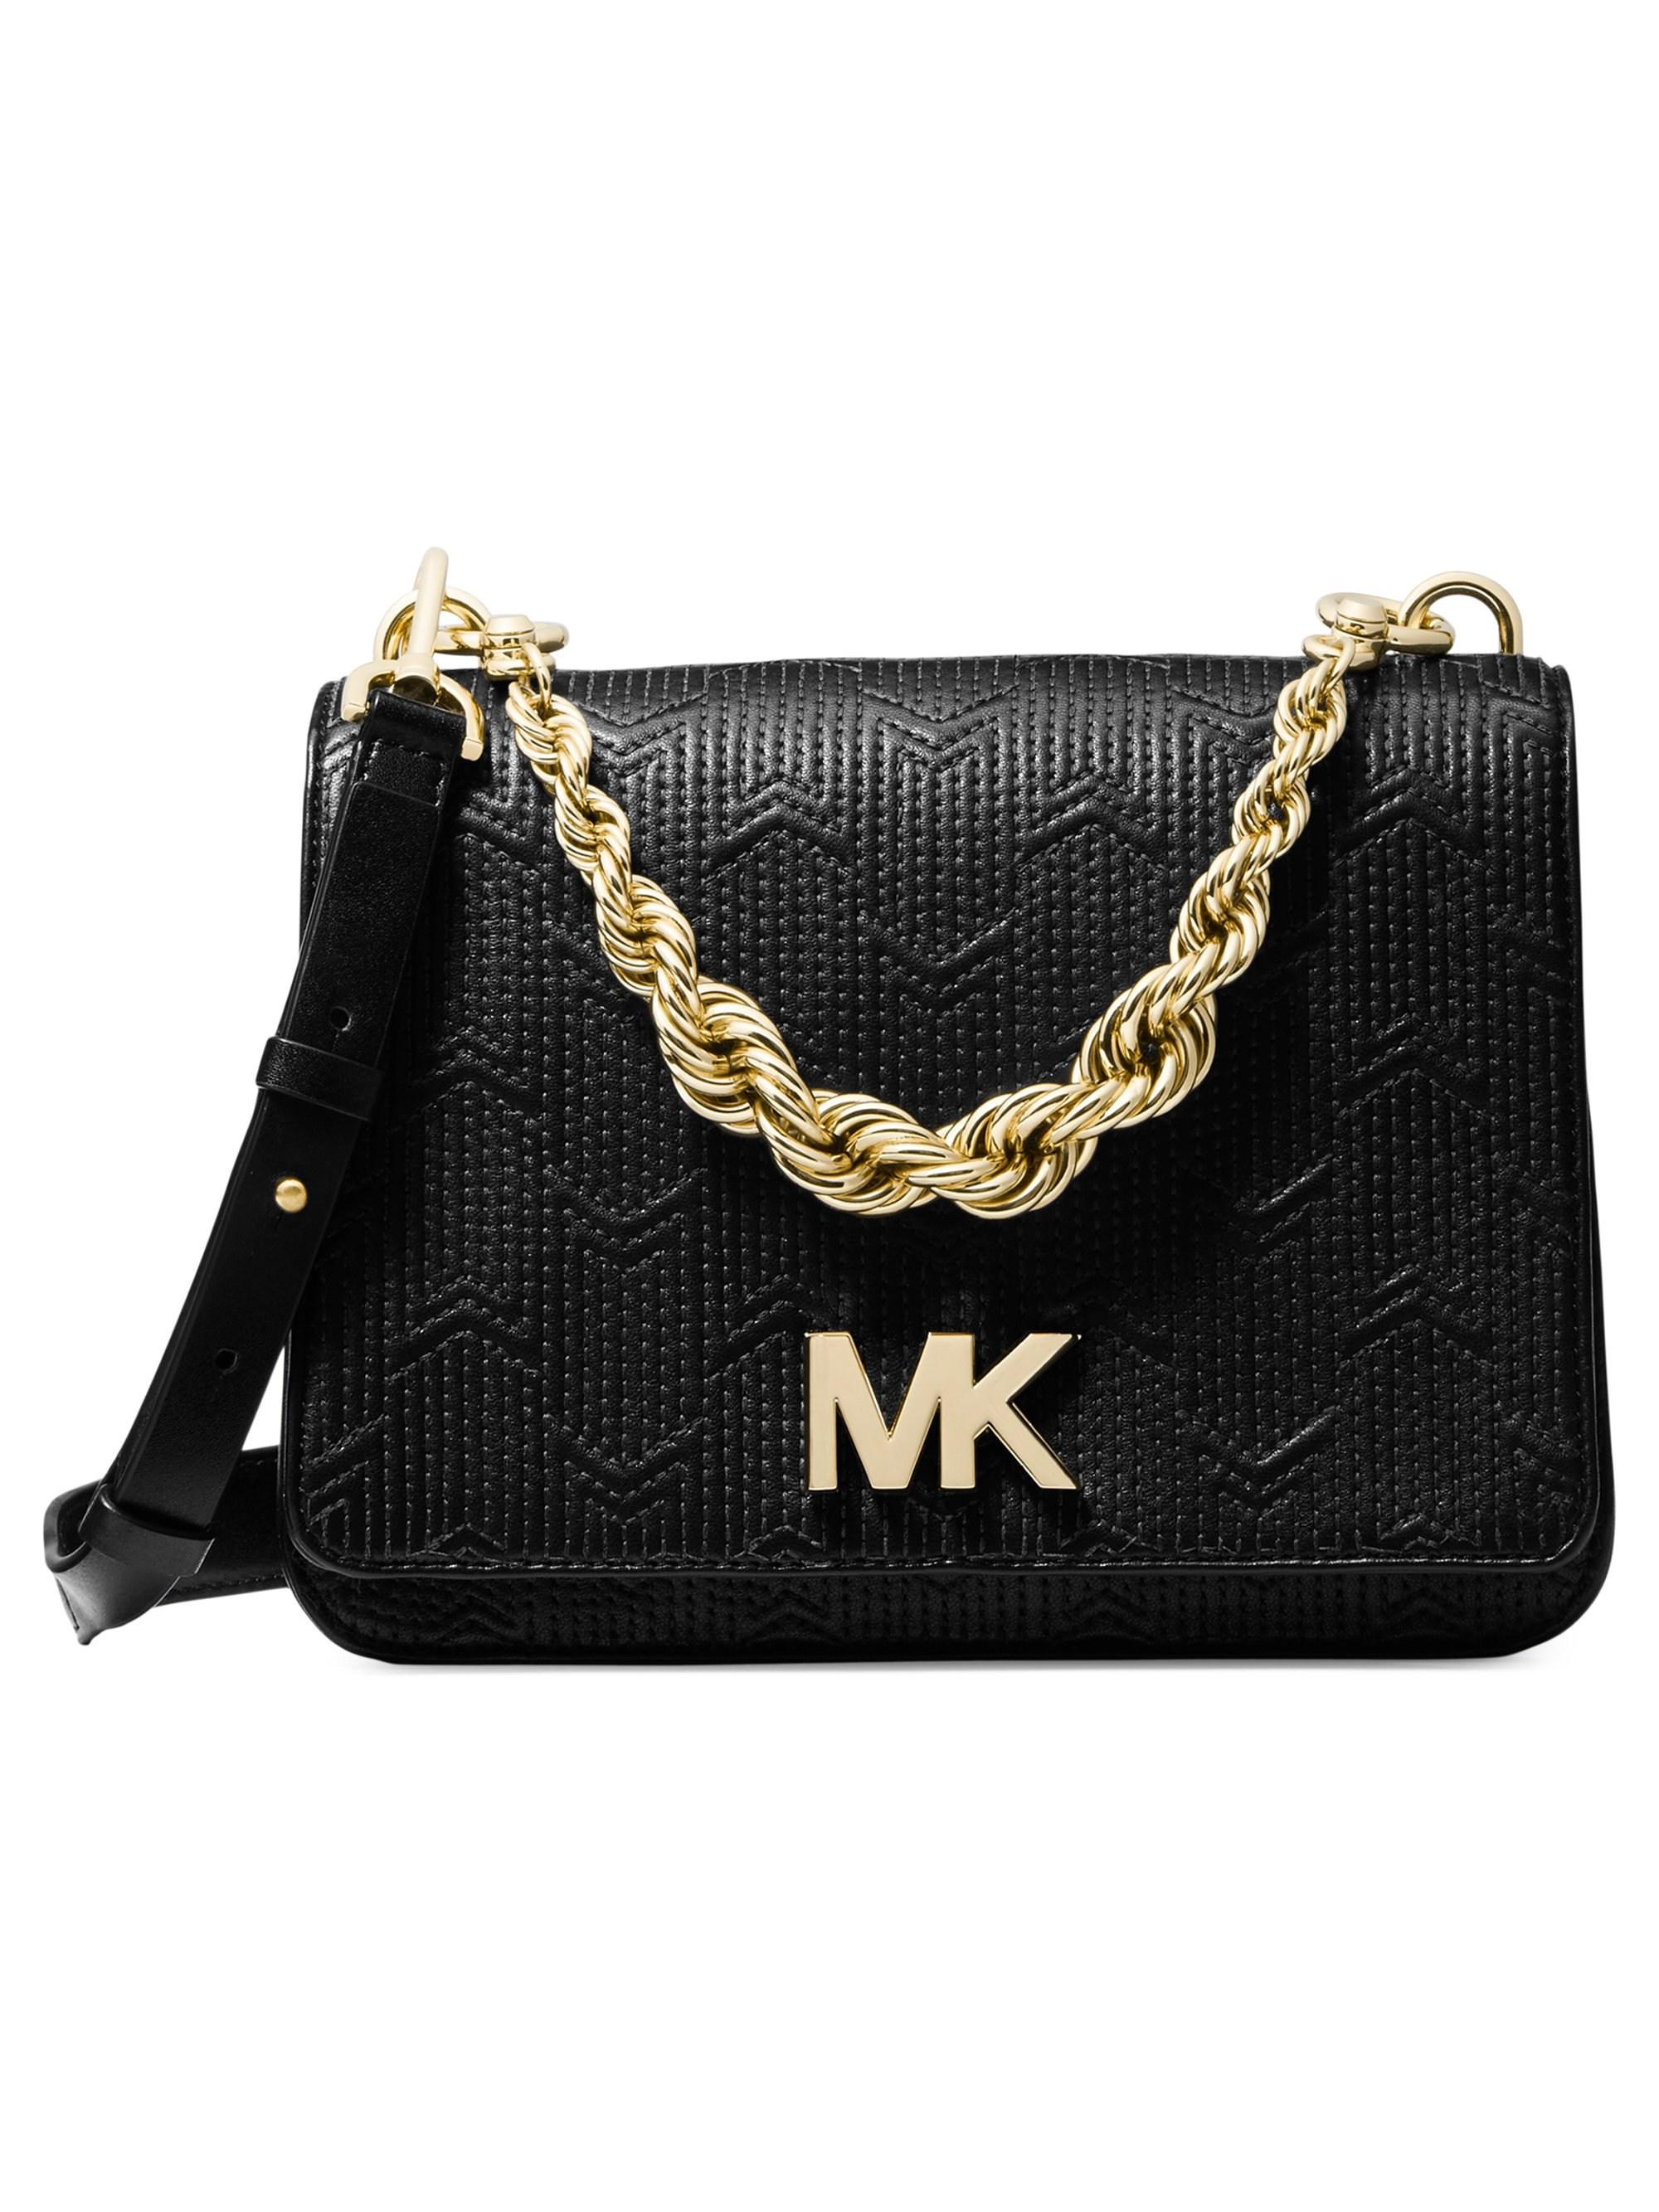 923c4cb3627aa Lyst - Michael Kors Michael Mott Chain Shoulder Bag in Black